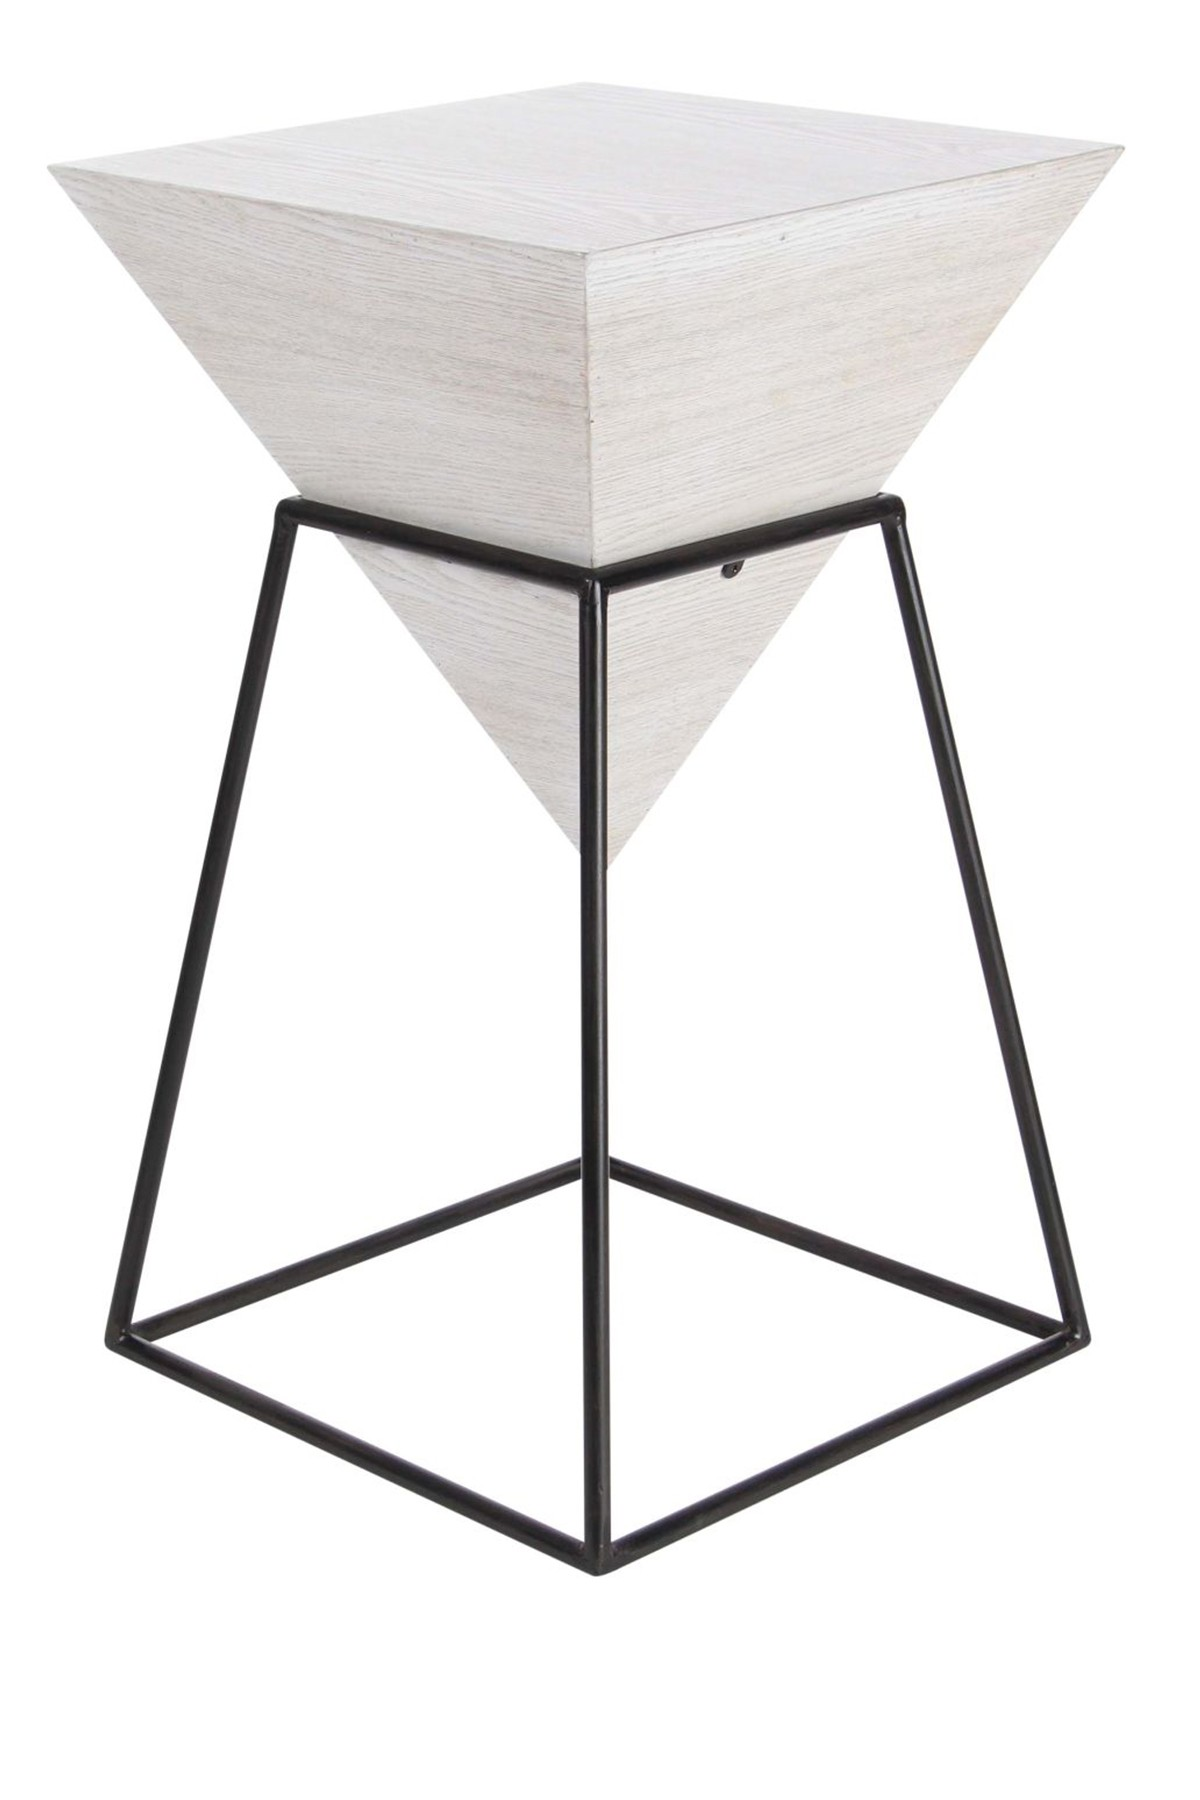 uma wood metal accent table nordstrom rack outdoor bar dining set lobby furniture square legs rattan and marble side circular bedside glass top patio coffee end tables serving